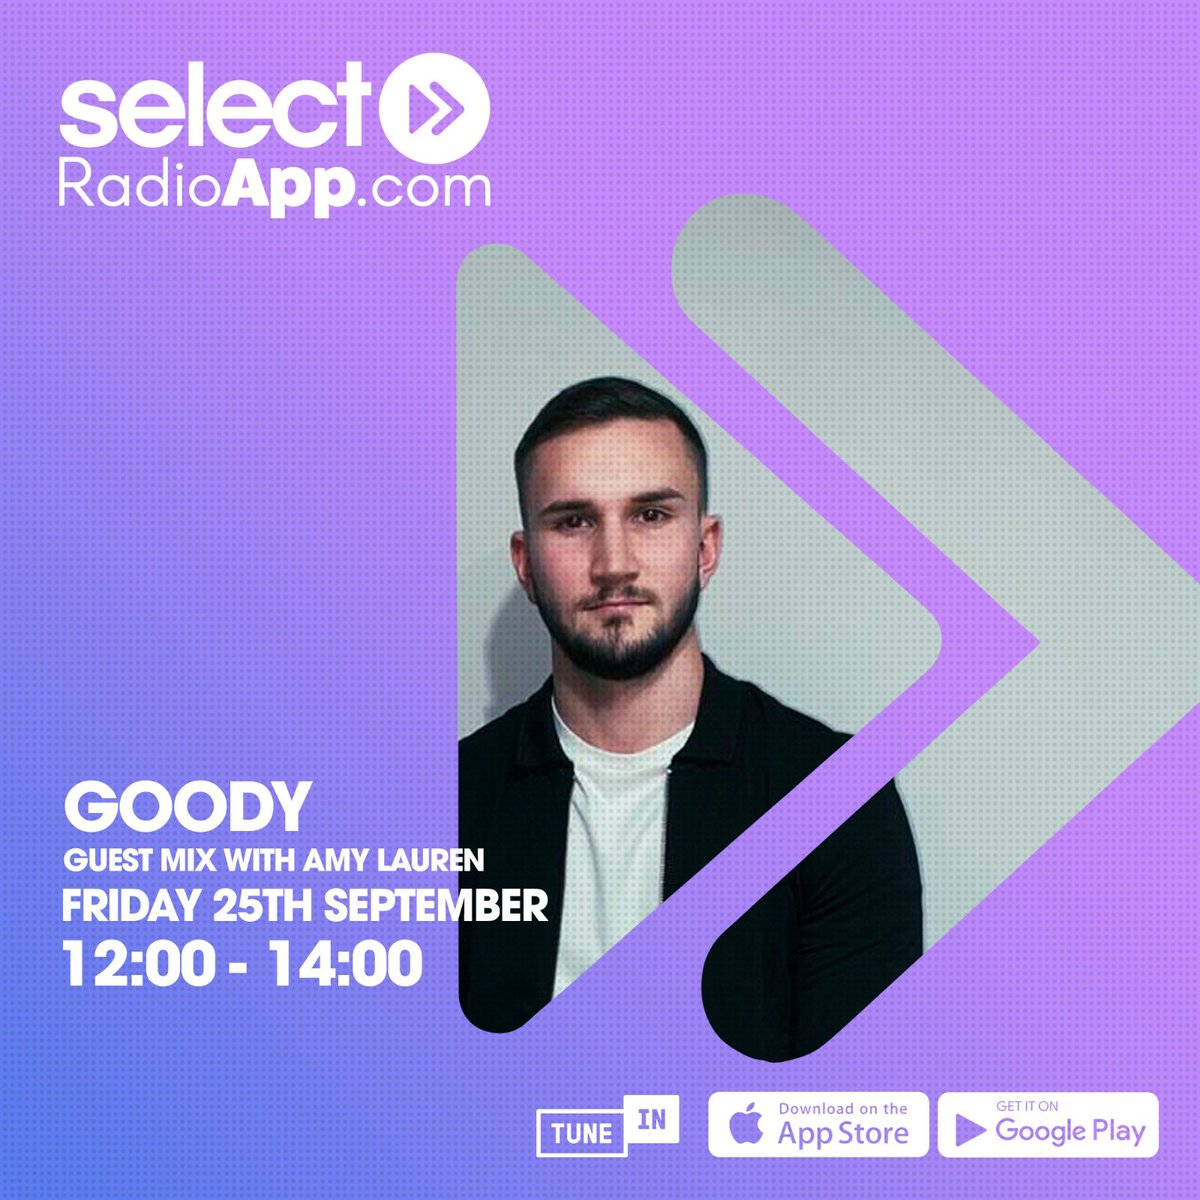 #np @djrendher @richardulh - Dancing like Madonna in @OfficialGoody #GuestMix on #TheDanceShow on @SelectRadioApp https://t.co/btmuyaRCWL